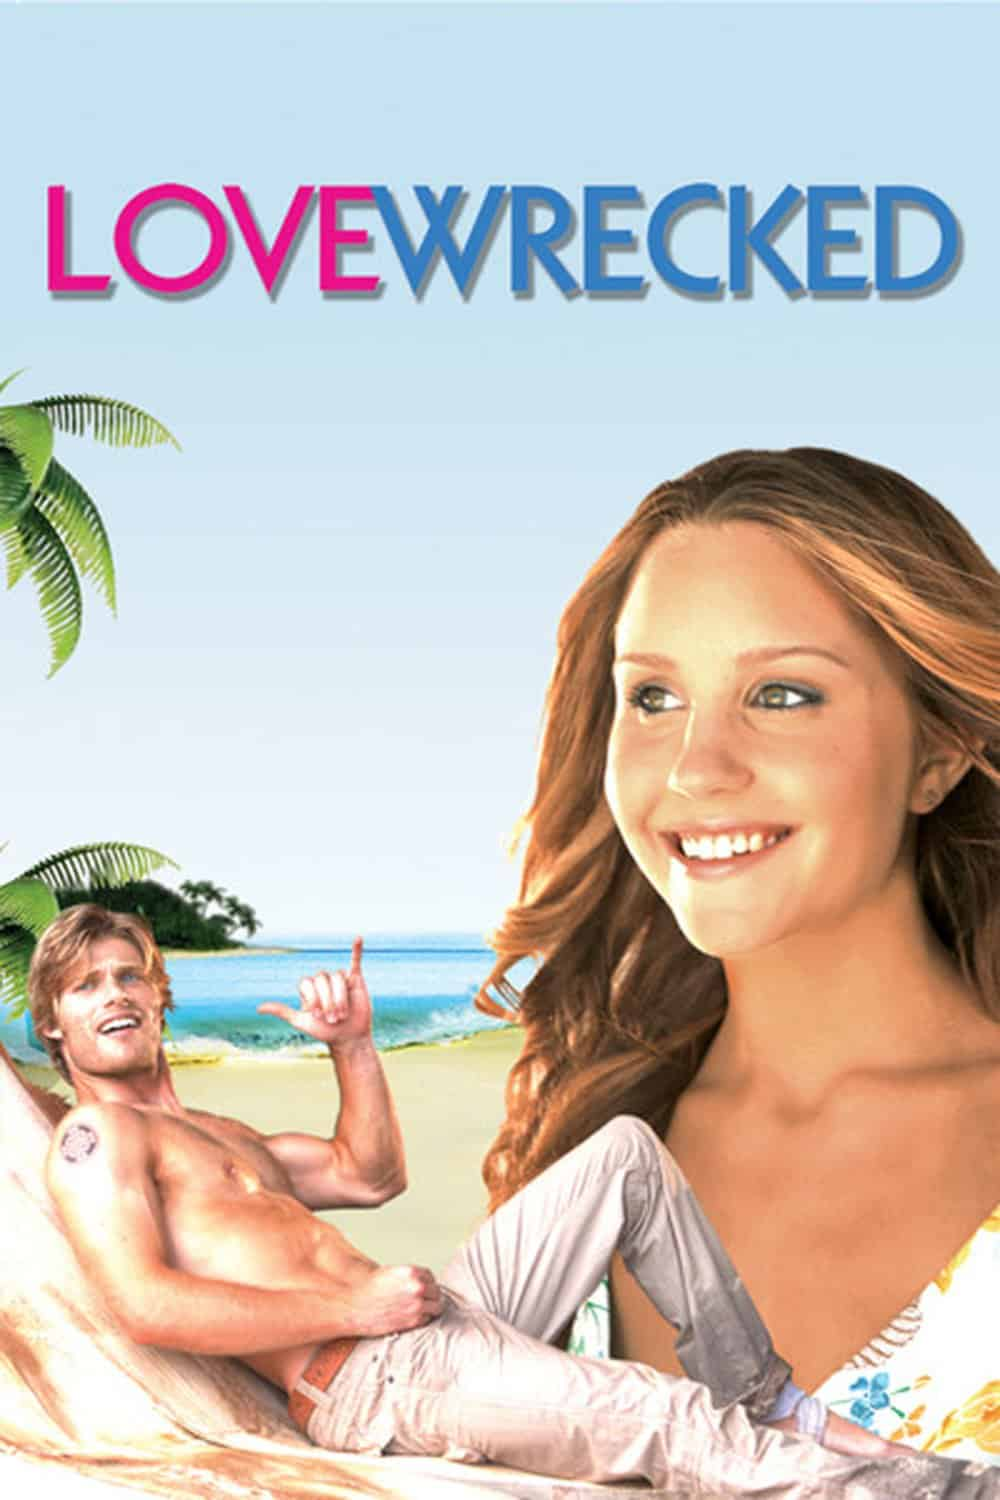 Love Wrecked, 2005